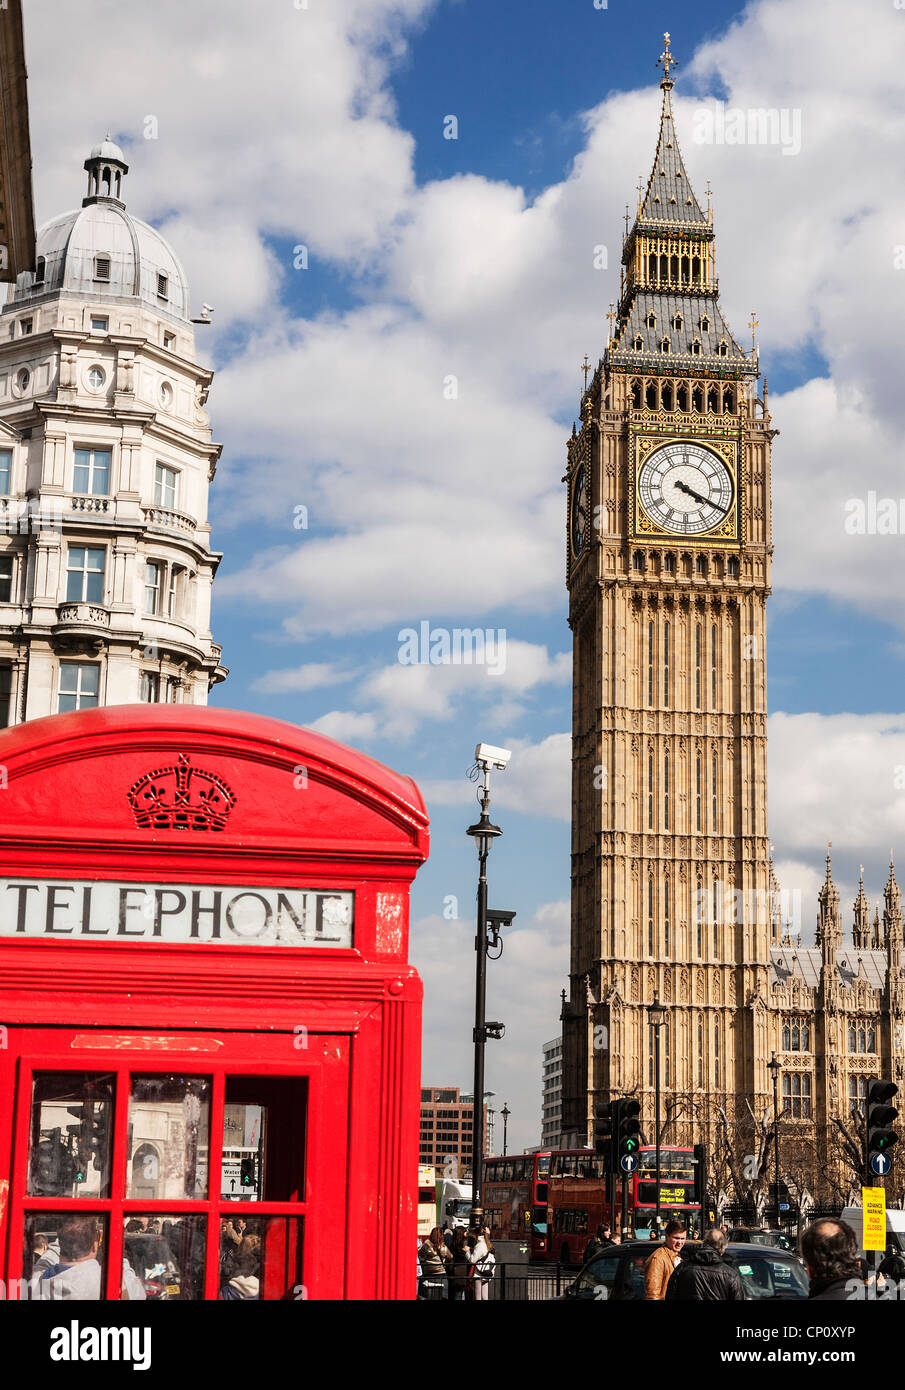 "Red telephone box and the Big Ben clock tower ""Elizabeth ..."